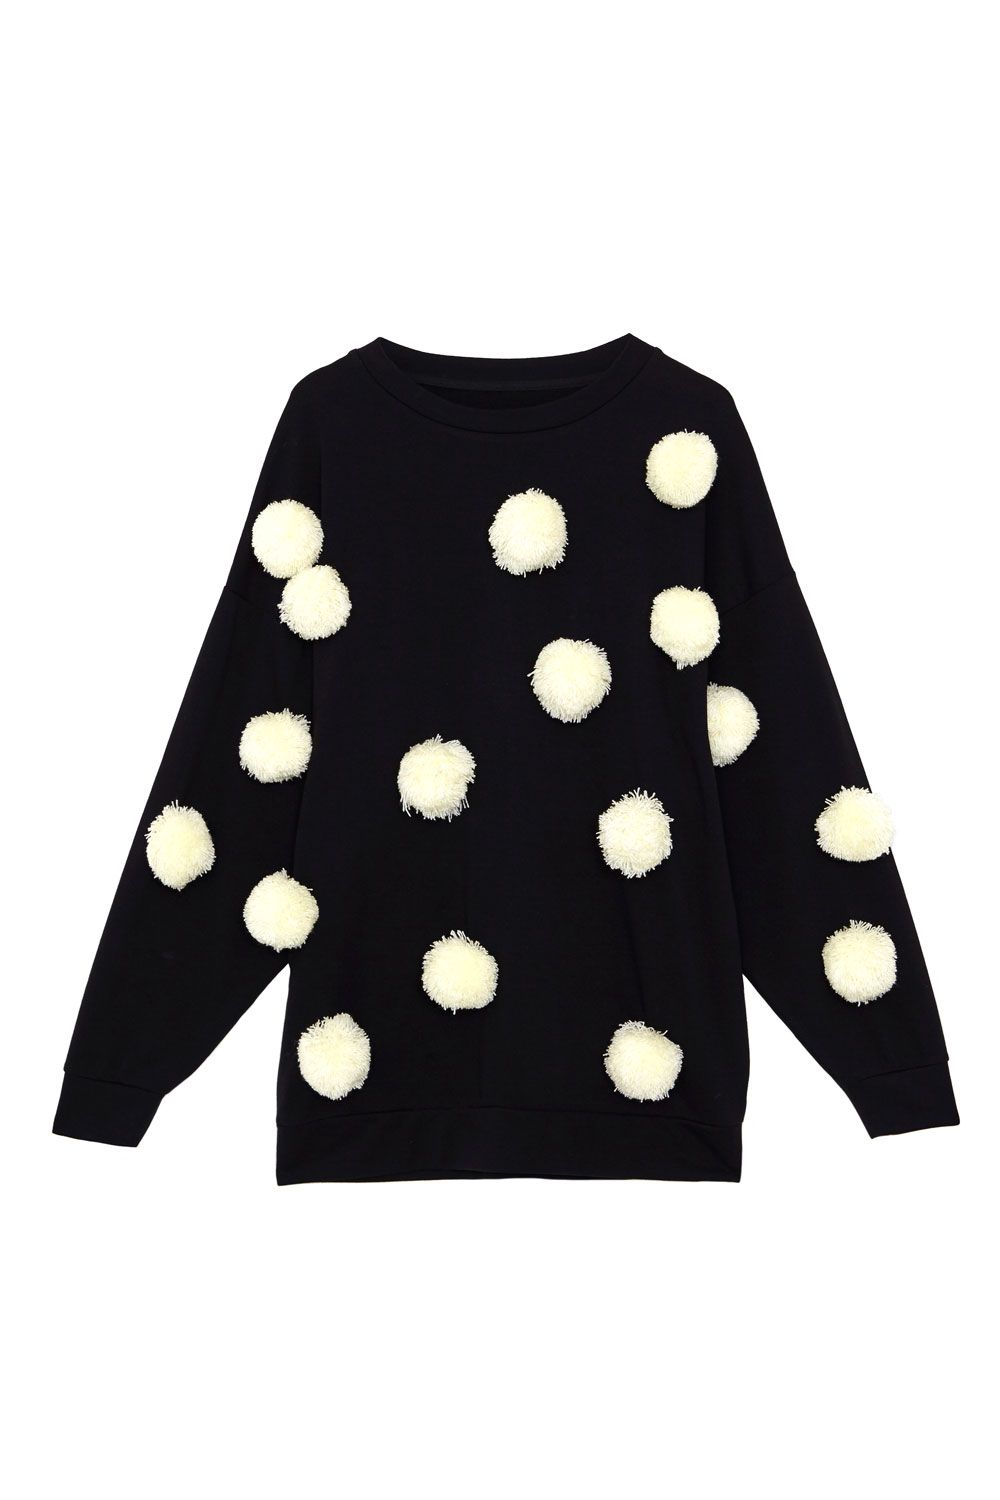 News Marie Claire Sweaters Crew Neck Sweater Polka Dot Sweater